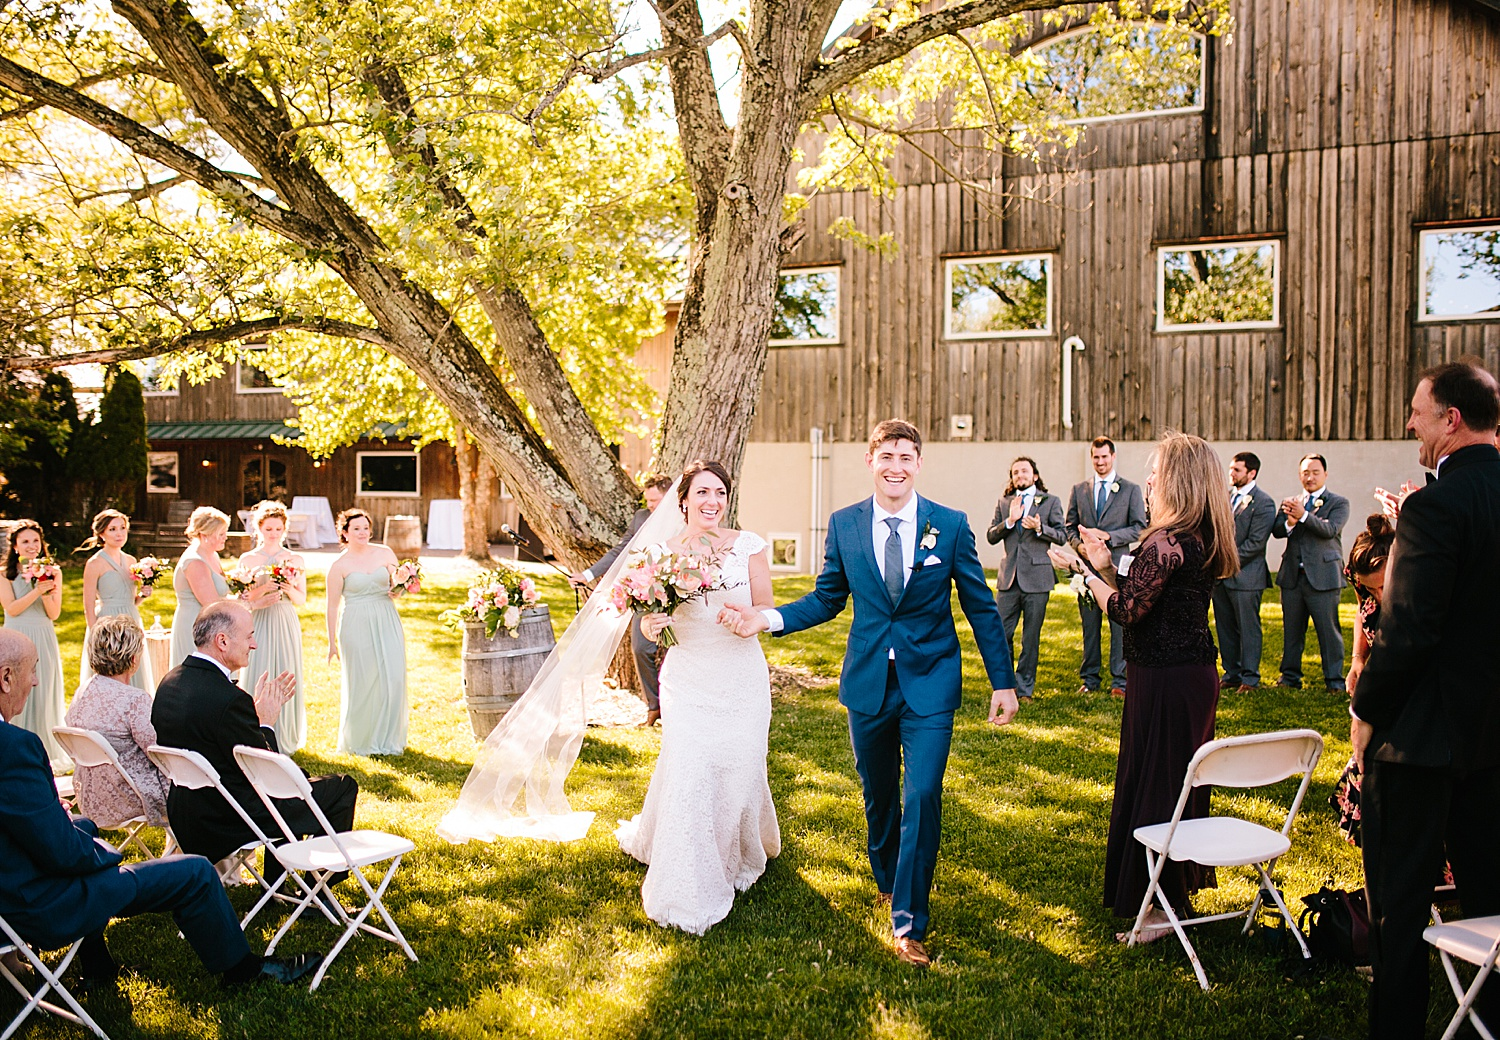 emilyaustin_rosebank_winery_newhope_farm_wedding_image093.jpg